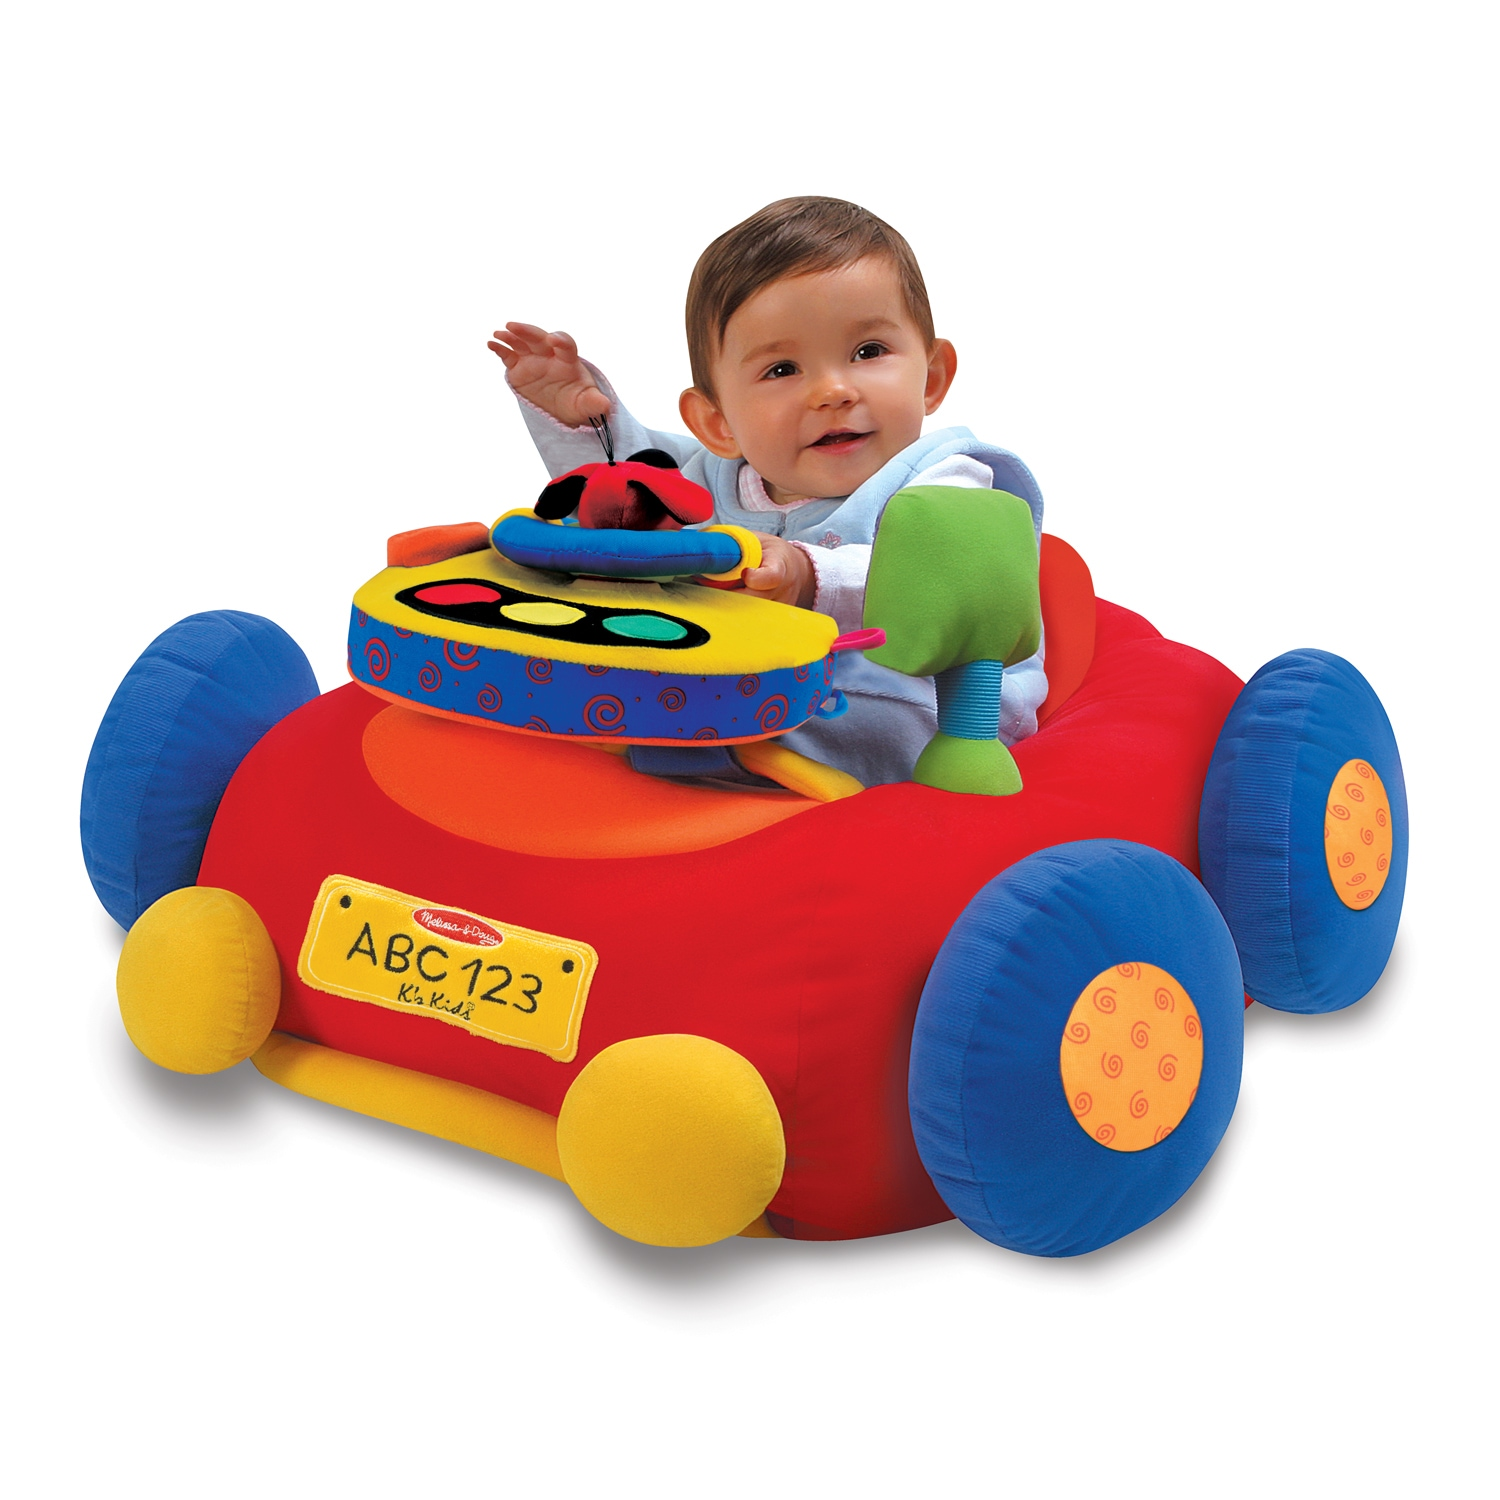 Baby Activity Center Melissa Doug Beep Beep Play Activity Center Baby Toy Red Blue